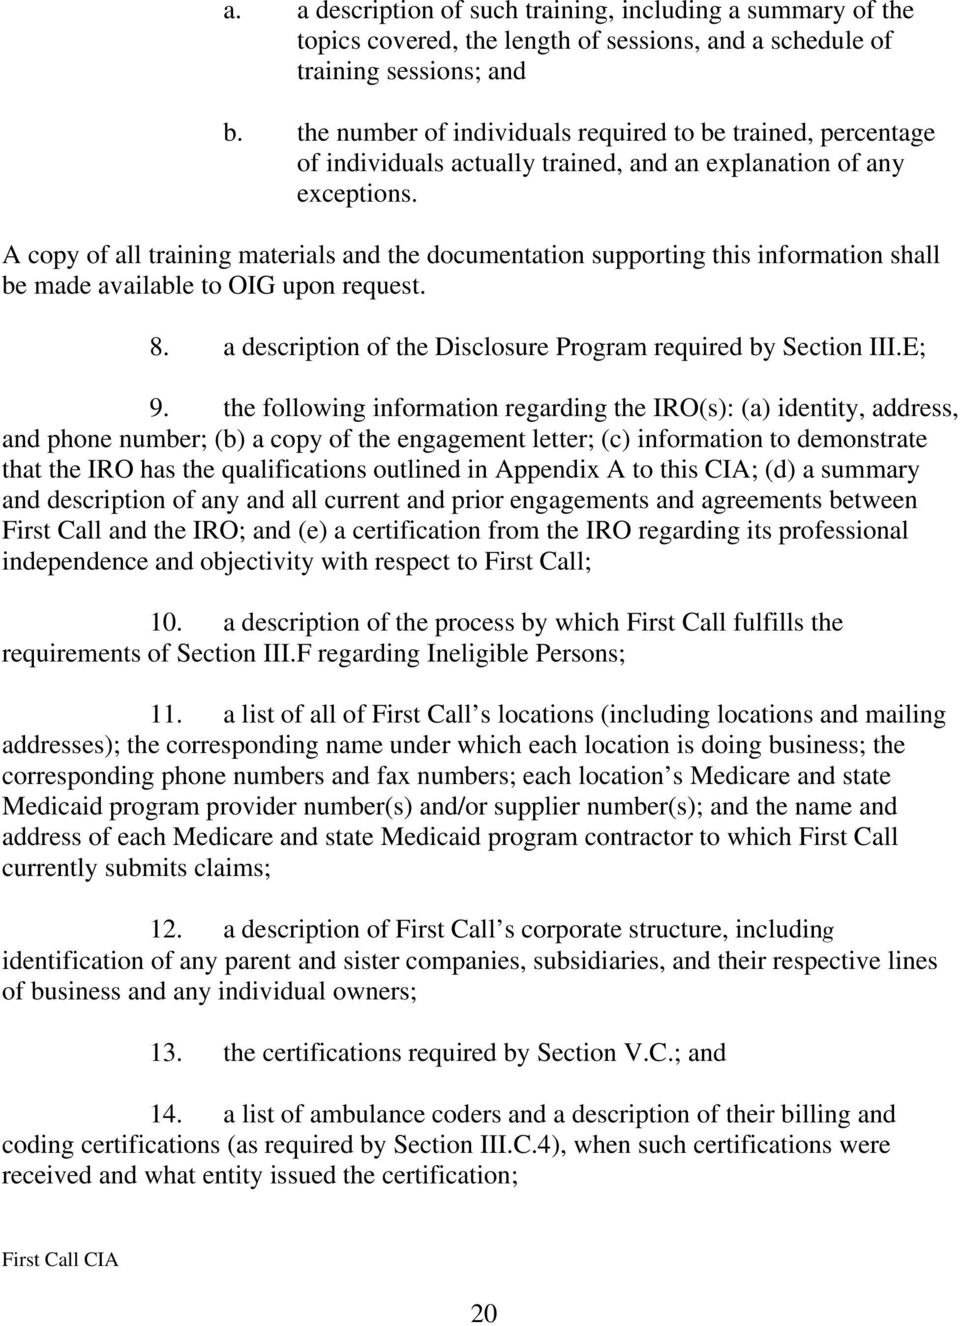 A copy of all training materials and the documentation supporting this information shall be made available to OIG upon request. 8. a description of the Disclosure Program required by Section III.E; 9.